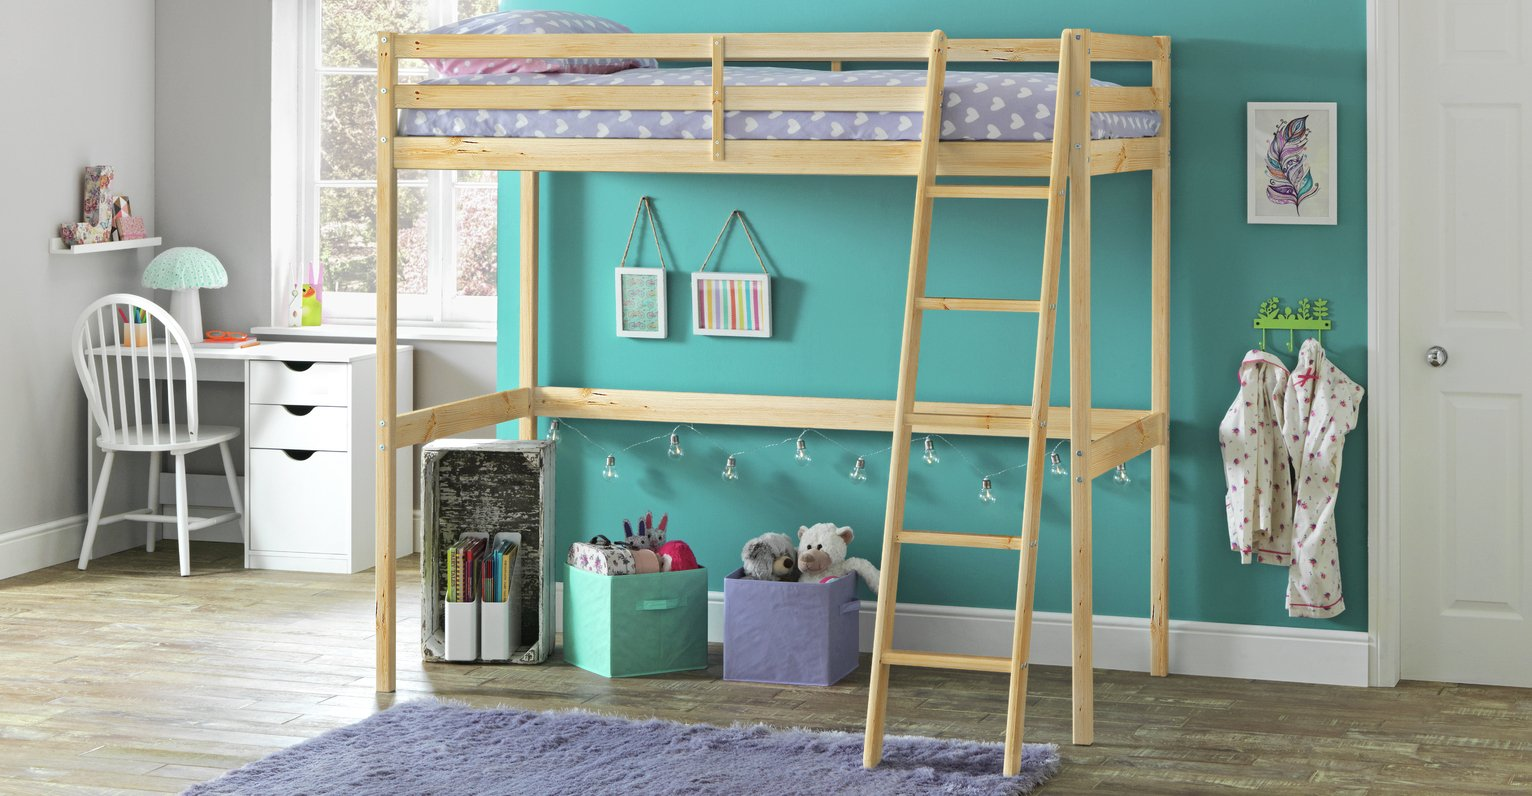 Argos Home Kaycie Pine High Sleeper Single Bed Frame